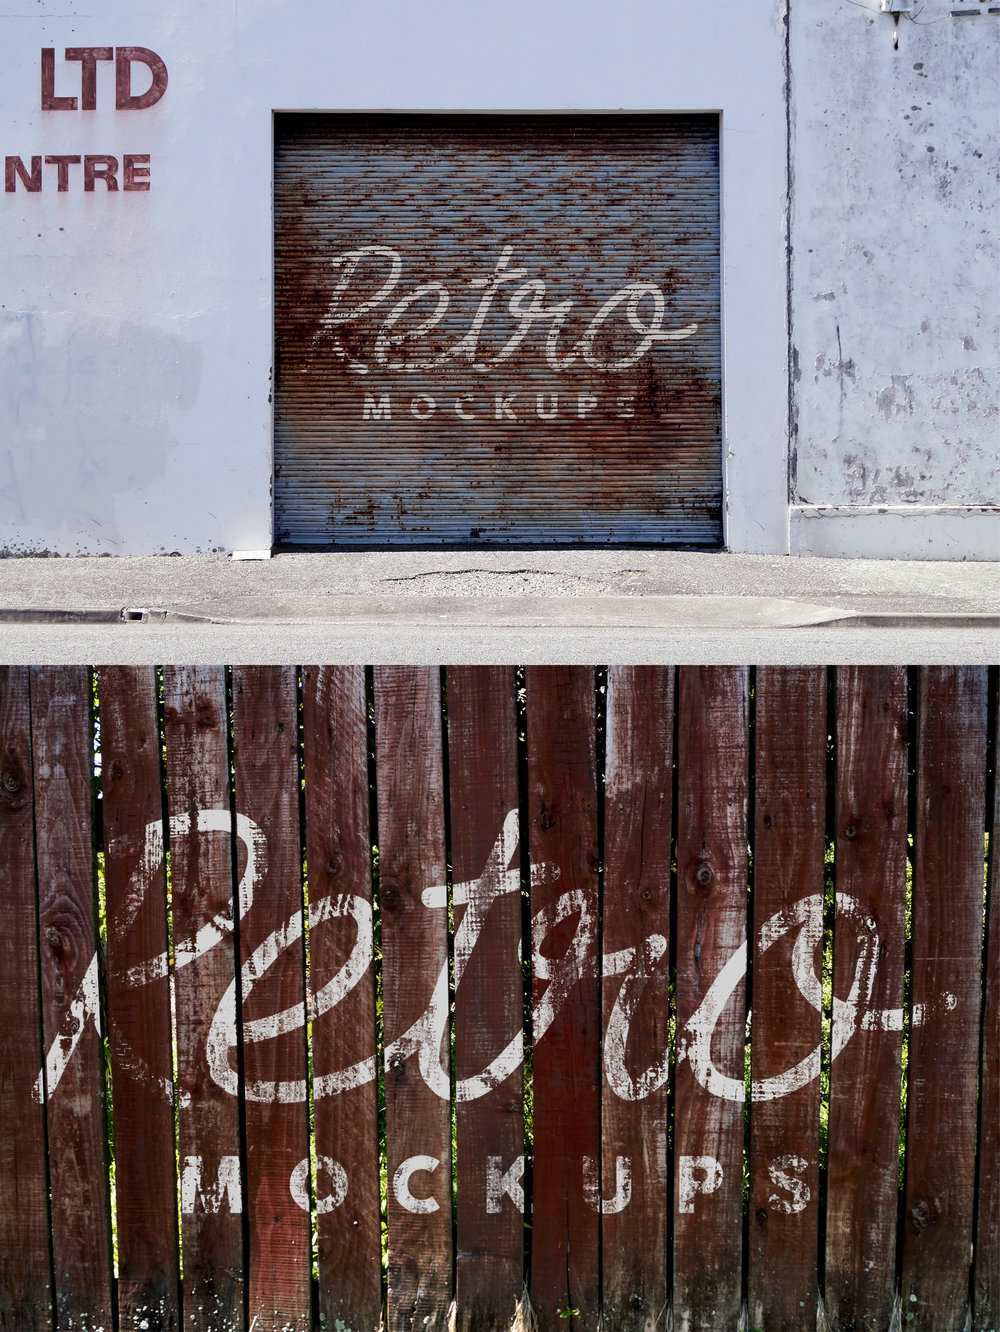 FREE MOCKUP 45 RETRO MOCKUPS - This gives you the chance to try before you buy. 45 Retro Mockups consists of beat up garage doors, peeling paint, brick walls, aged textures, shop fronts and oh about 40 more retro images to give your projects that true worn retro look.Included in your free download are 2 mockups (left) and a retro photo filter. These will give you a feel of the product quality and how fast and easy it is to use these mockups.Click here to see 45 Retro Mockups in store